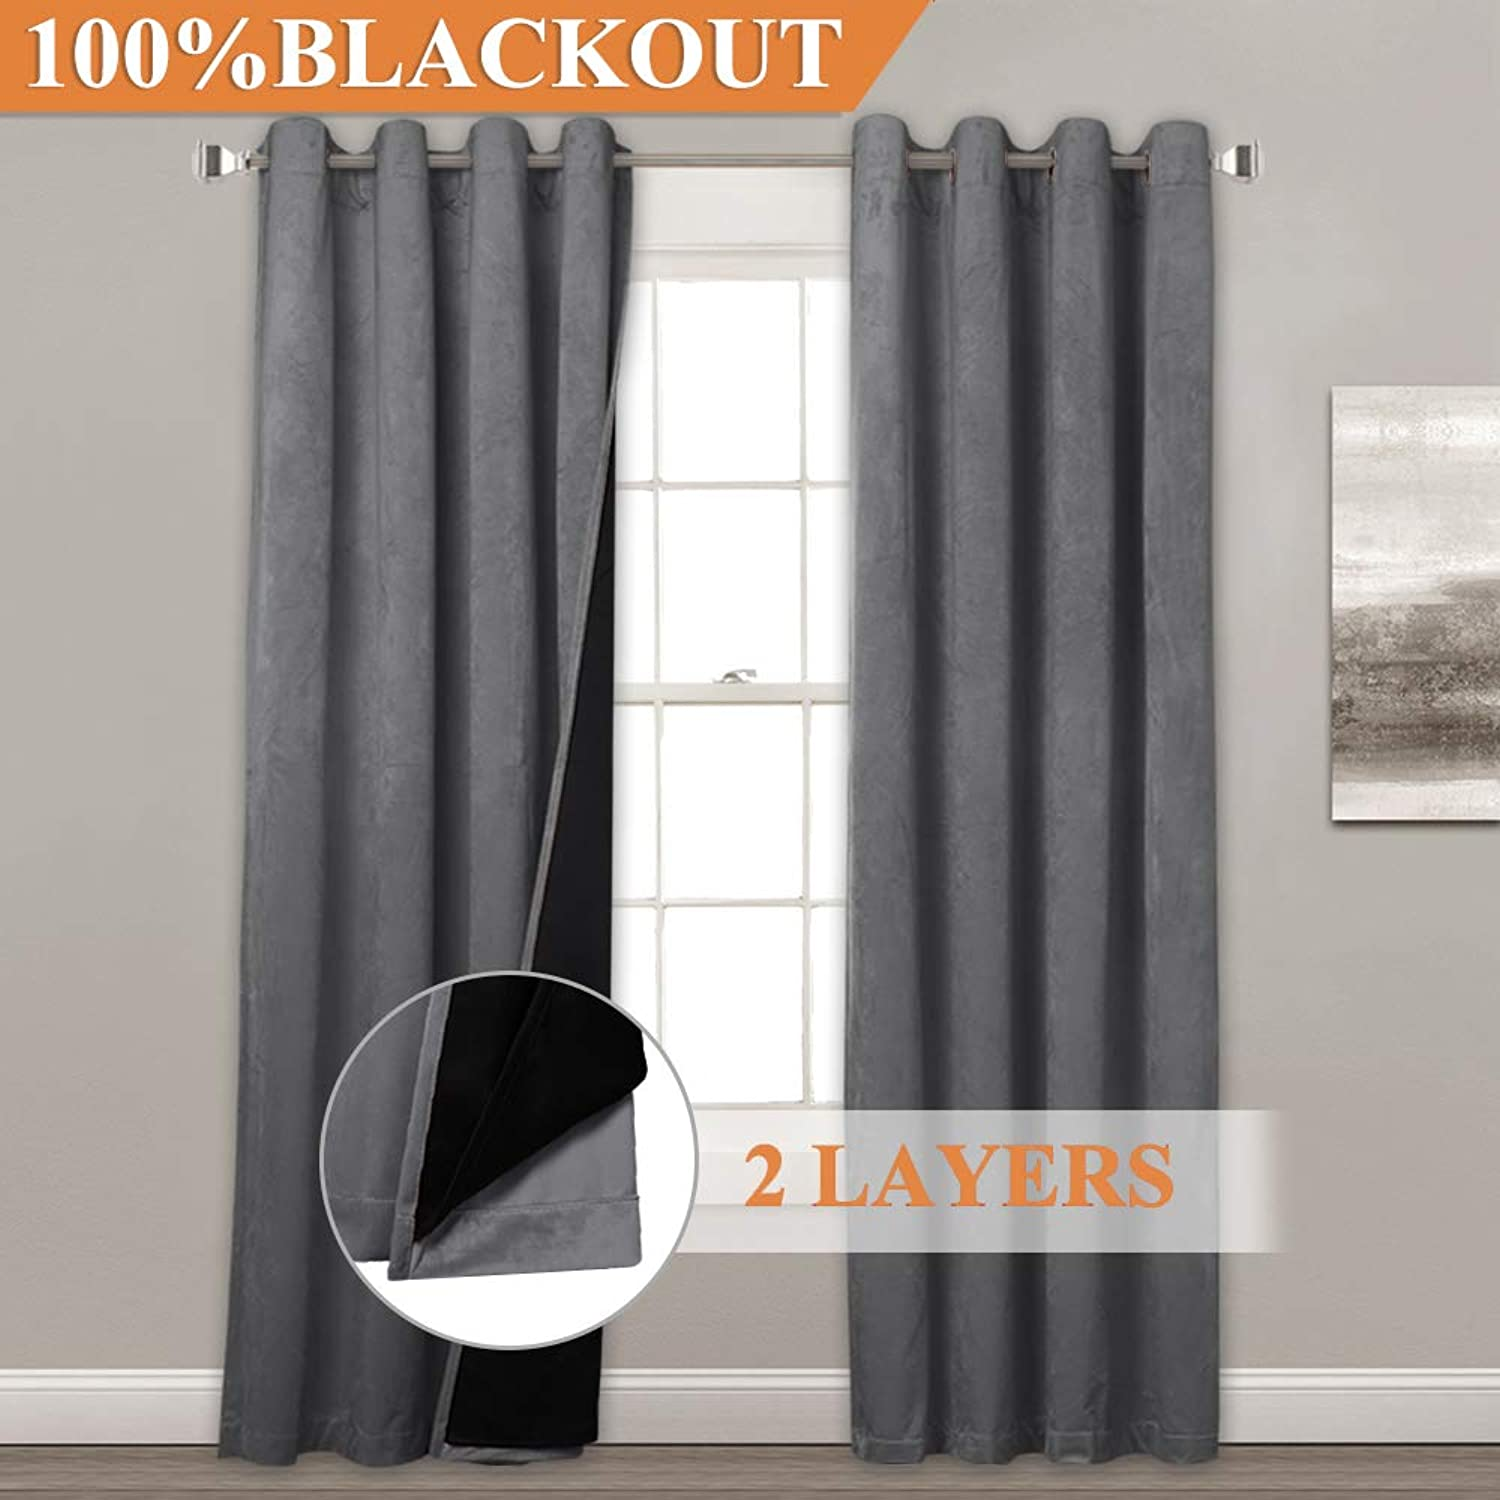 StangH 2 Thick Layers 100% Blackout Window Treatment Thermal Insulated Soft Velvet Textured Curtains with Black Liners, Elegance Privacy Drapes for Bedroom Window Dressing, Grey, W52 x L84, 2 Panels